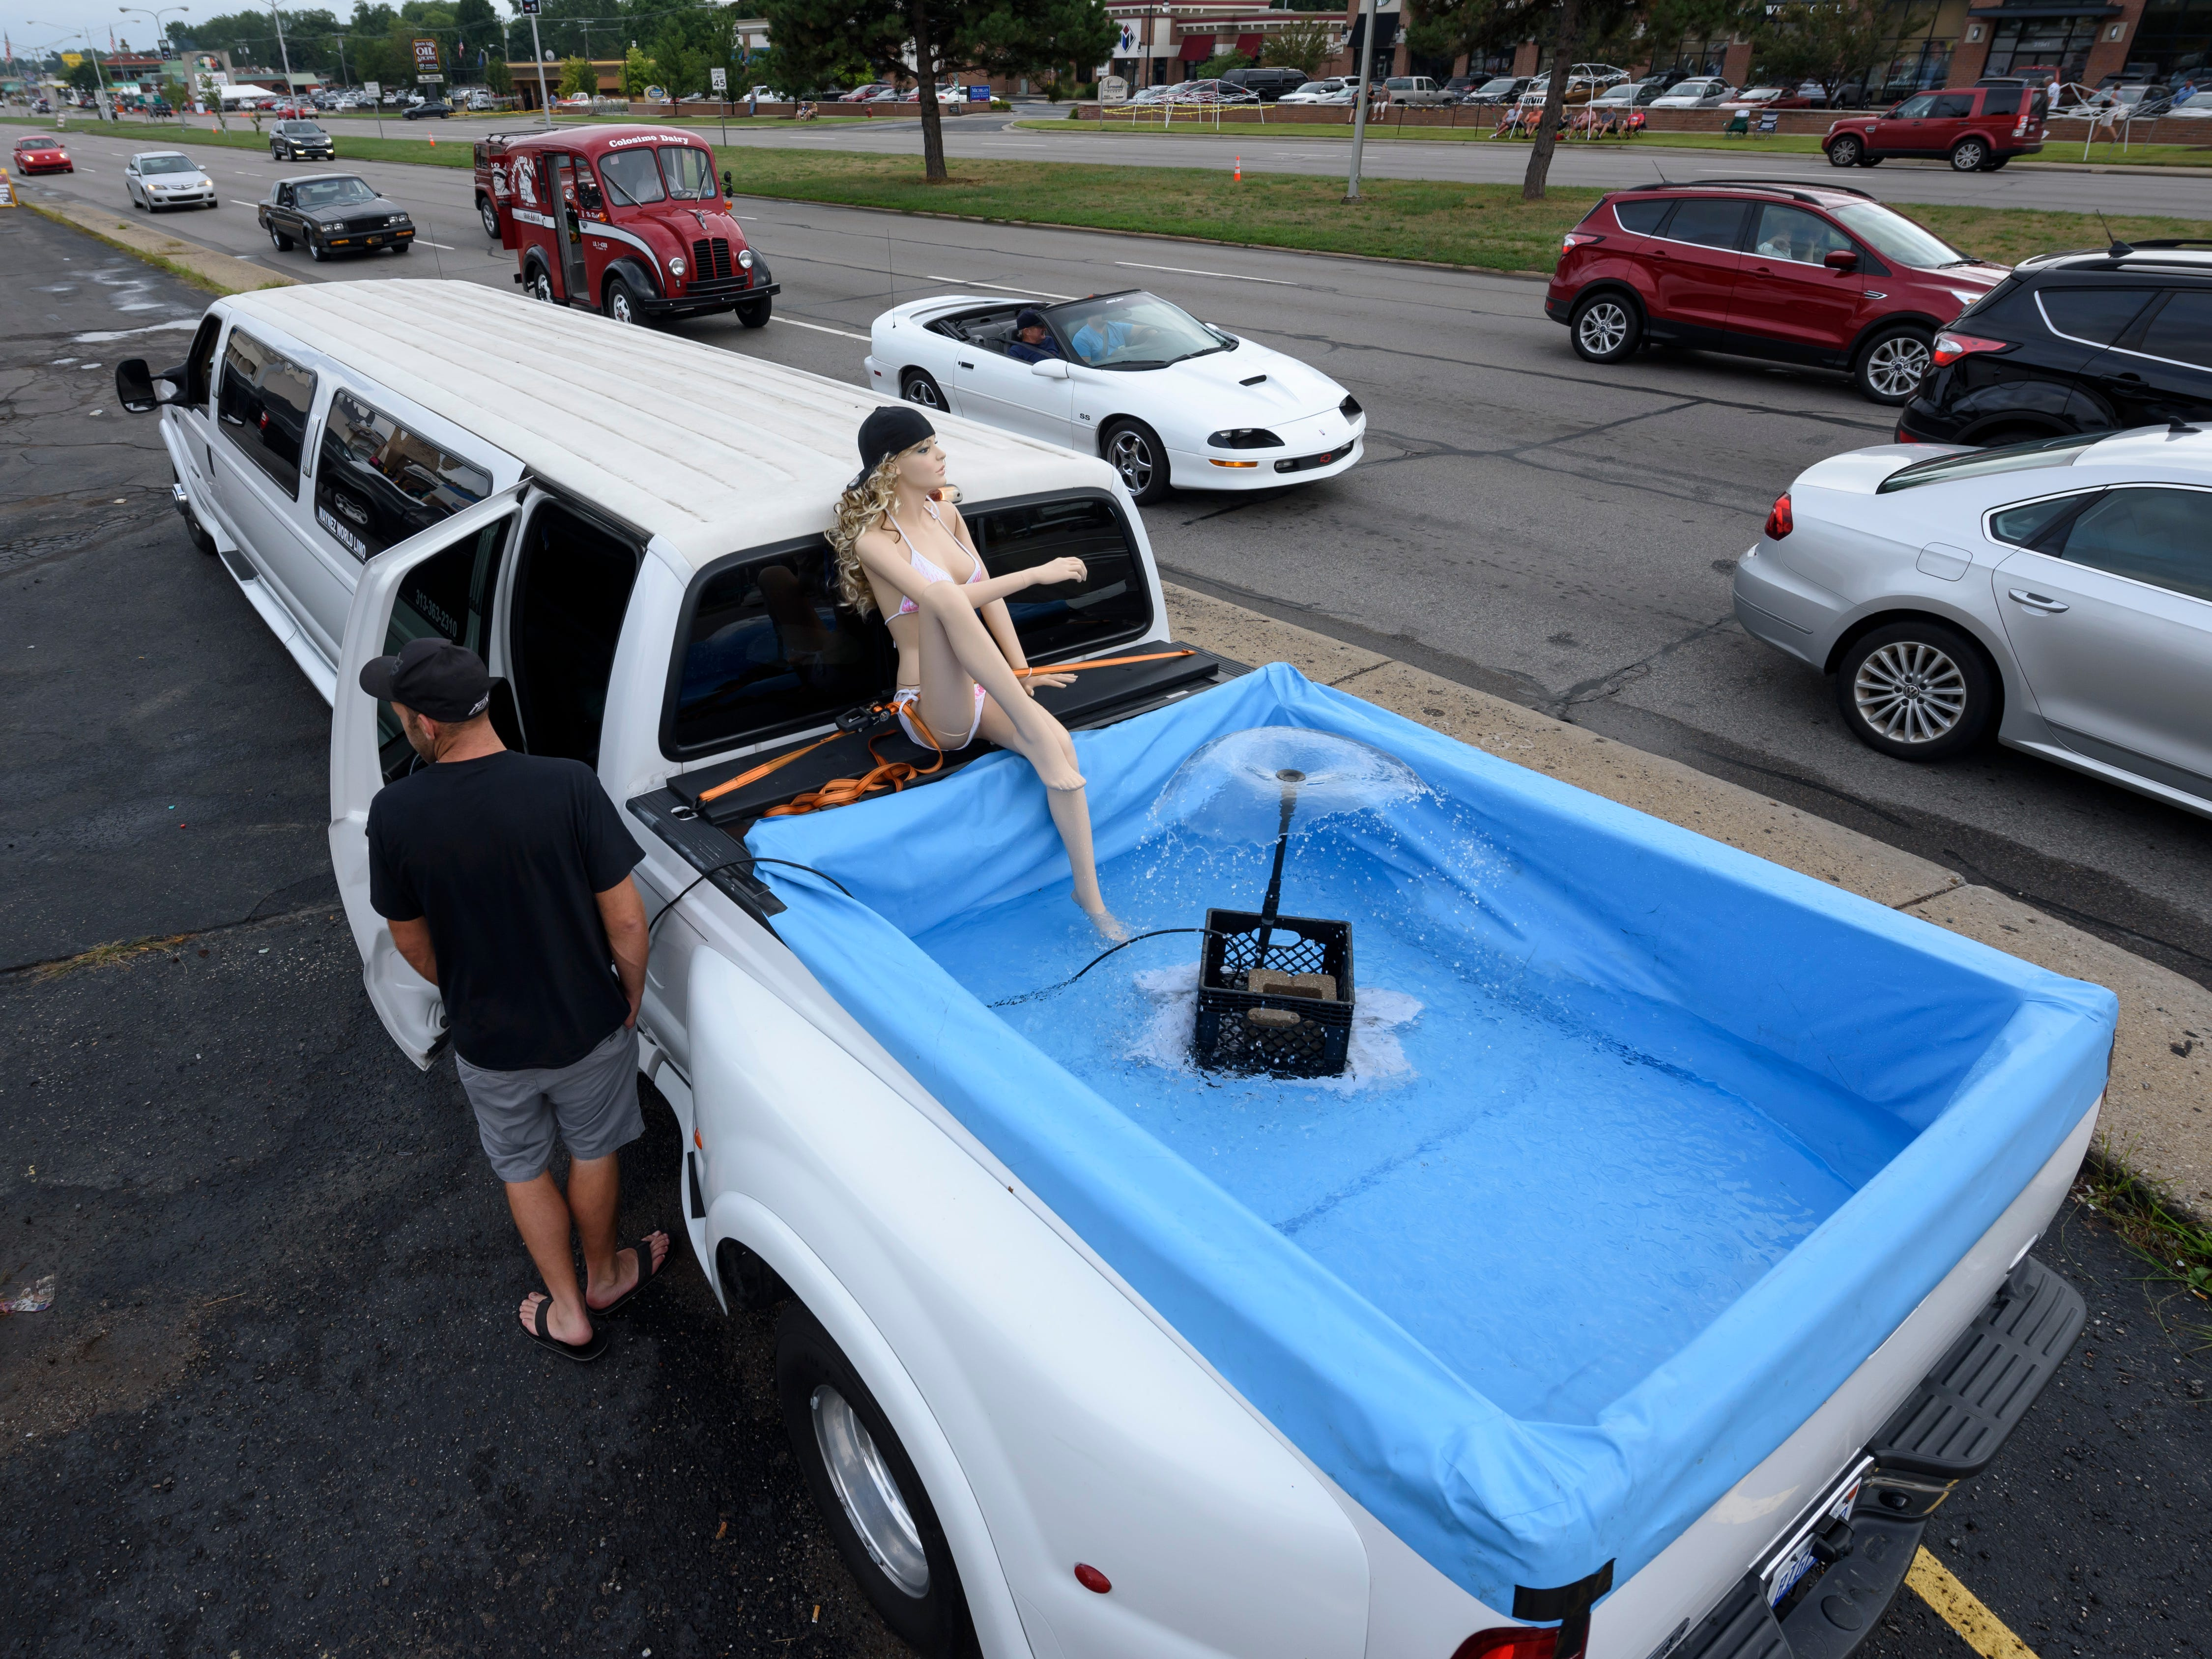 A 37-foot 2002 Ford F-250 converted limousine with included pool owned by Wayne Ferris of Dearborn Heights sits on Woodward near Normandy in Royal Oak in preparation for the Dream Cruise, Aug. 16, 2018.